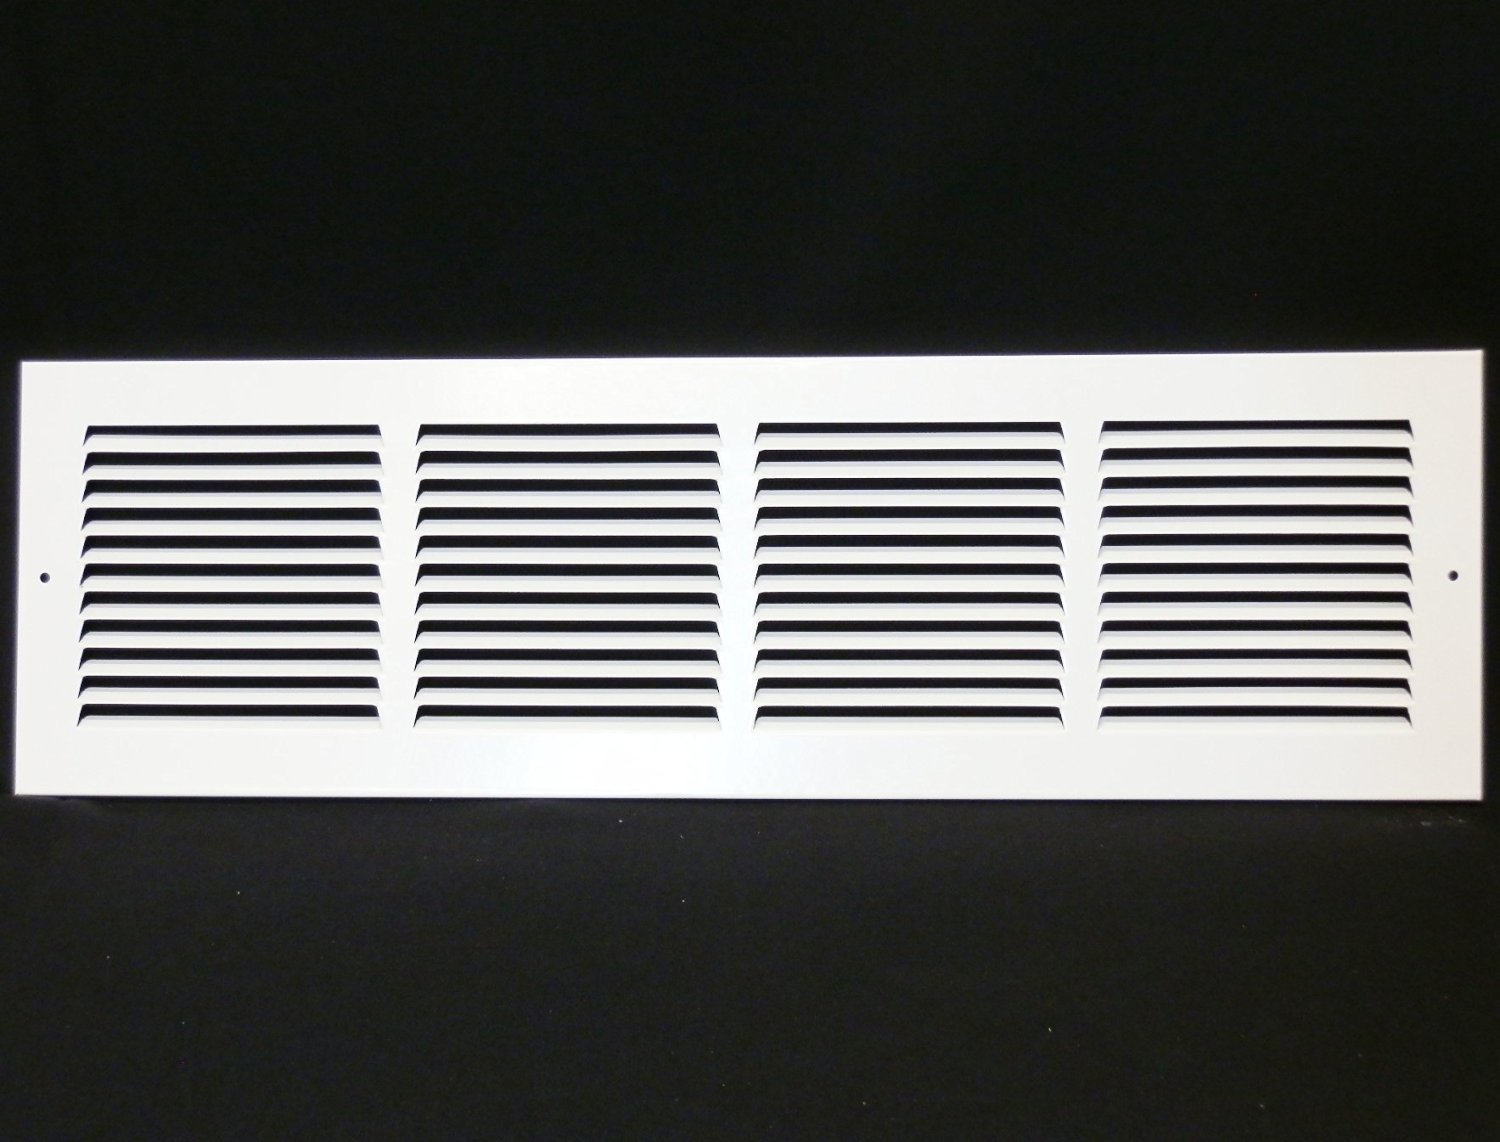 24''w X 6''h Steel Return Air Grilles - Sidewall and Cieling - HVAC DUCT COVER - White [Outer Dimensions: 25.75''w X 7.75''h]